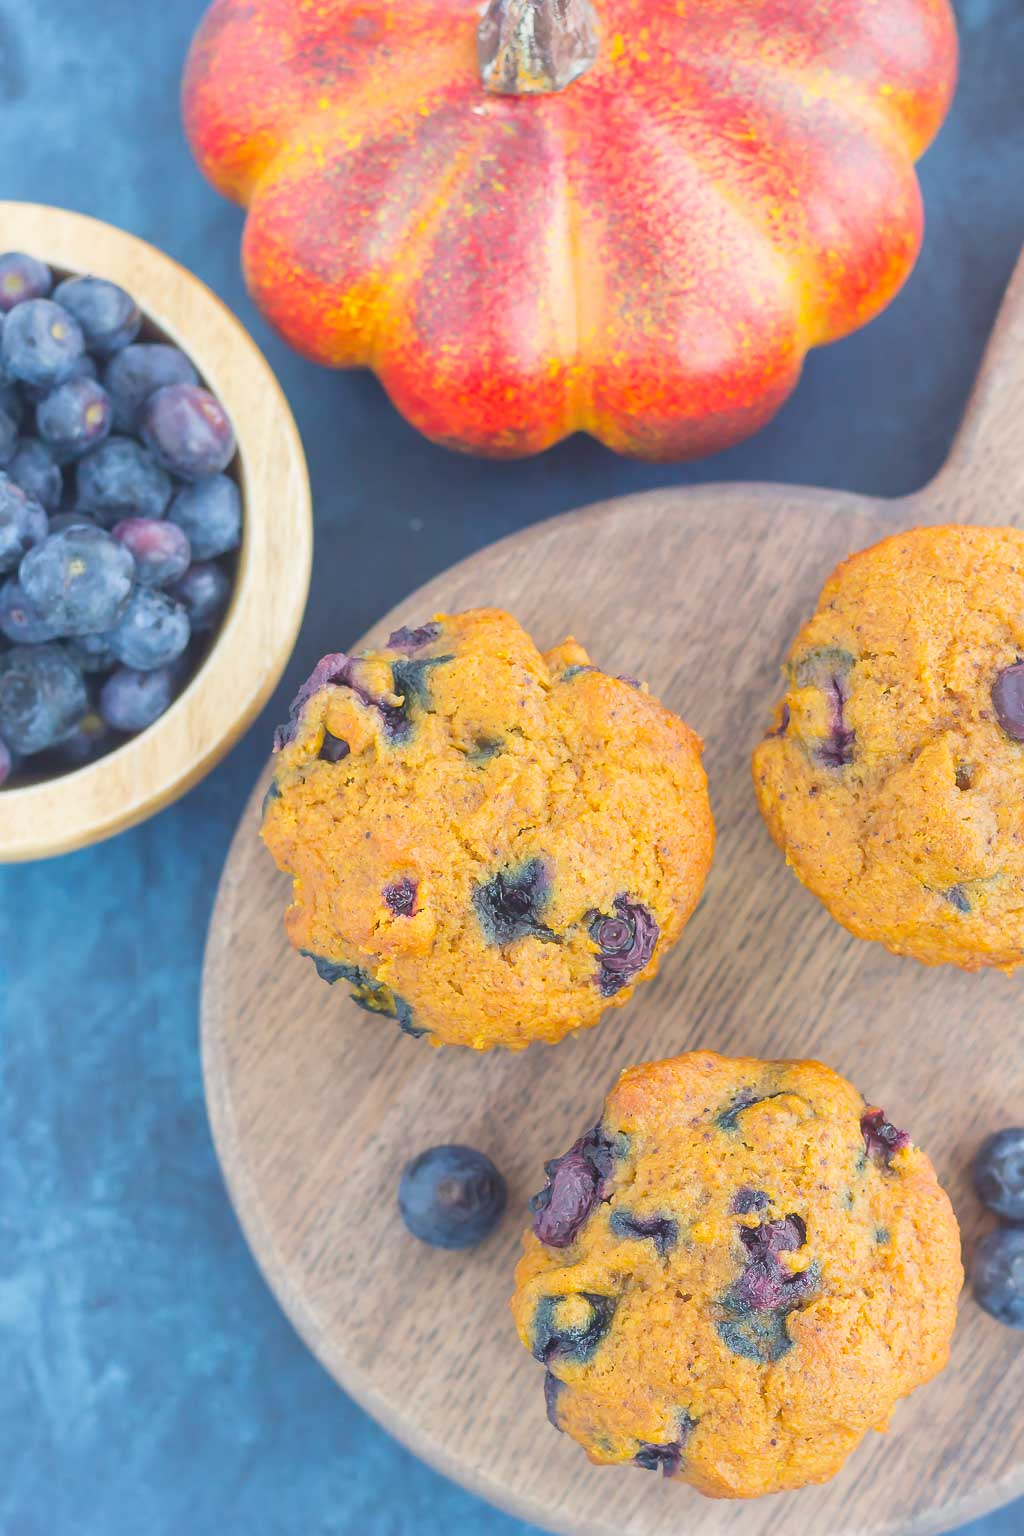 These Pumpkin Blueberry Muffins are soft, moist and bursting with cozy fall flavors. Packed with sweet pumpkin and juicy blueberries, this easy treat makes the perfect fall breakfast or snack! #pumpkinmuffins #pumpkinblueberrymuffins #muffins #blueberrymuffins #pumpkinbreakfast #pumpkindessert #falldessert #dessert #breakfast